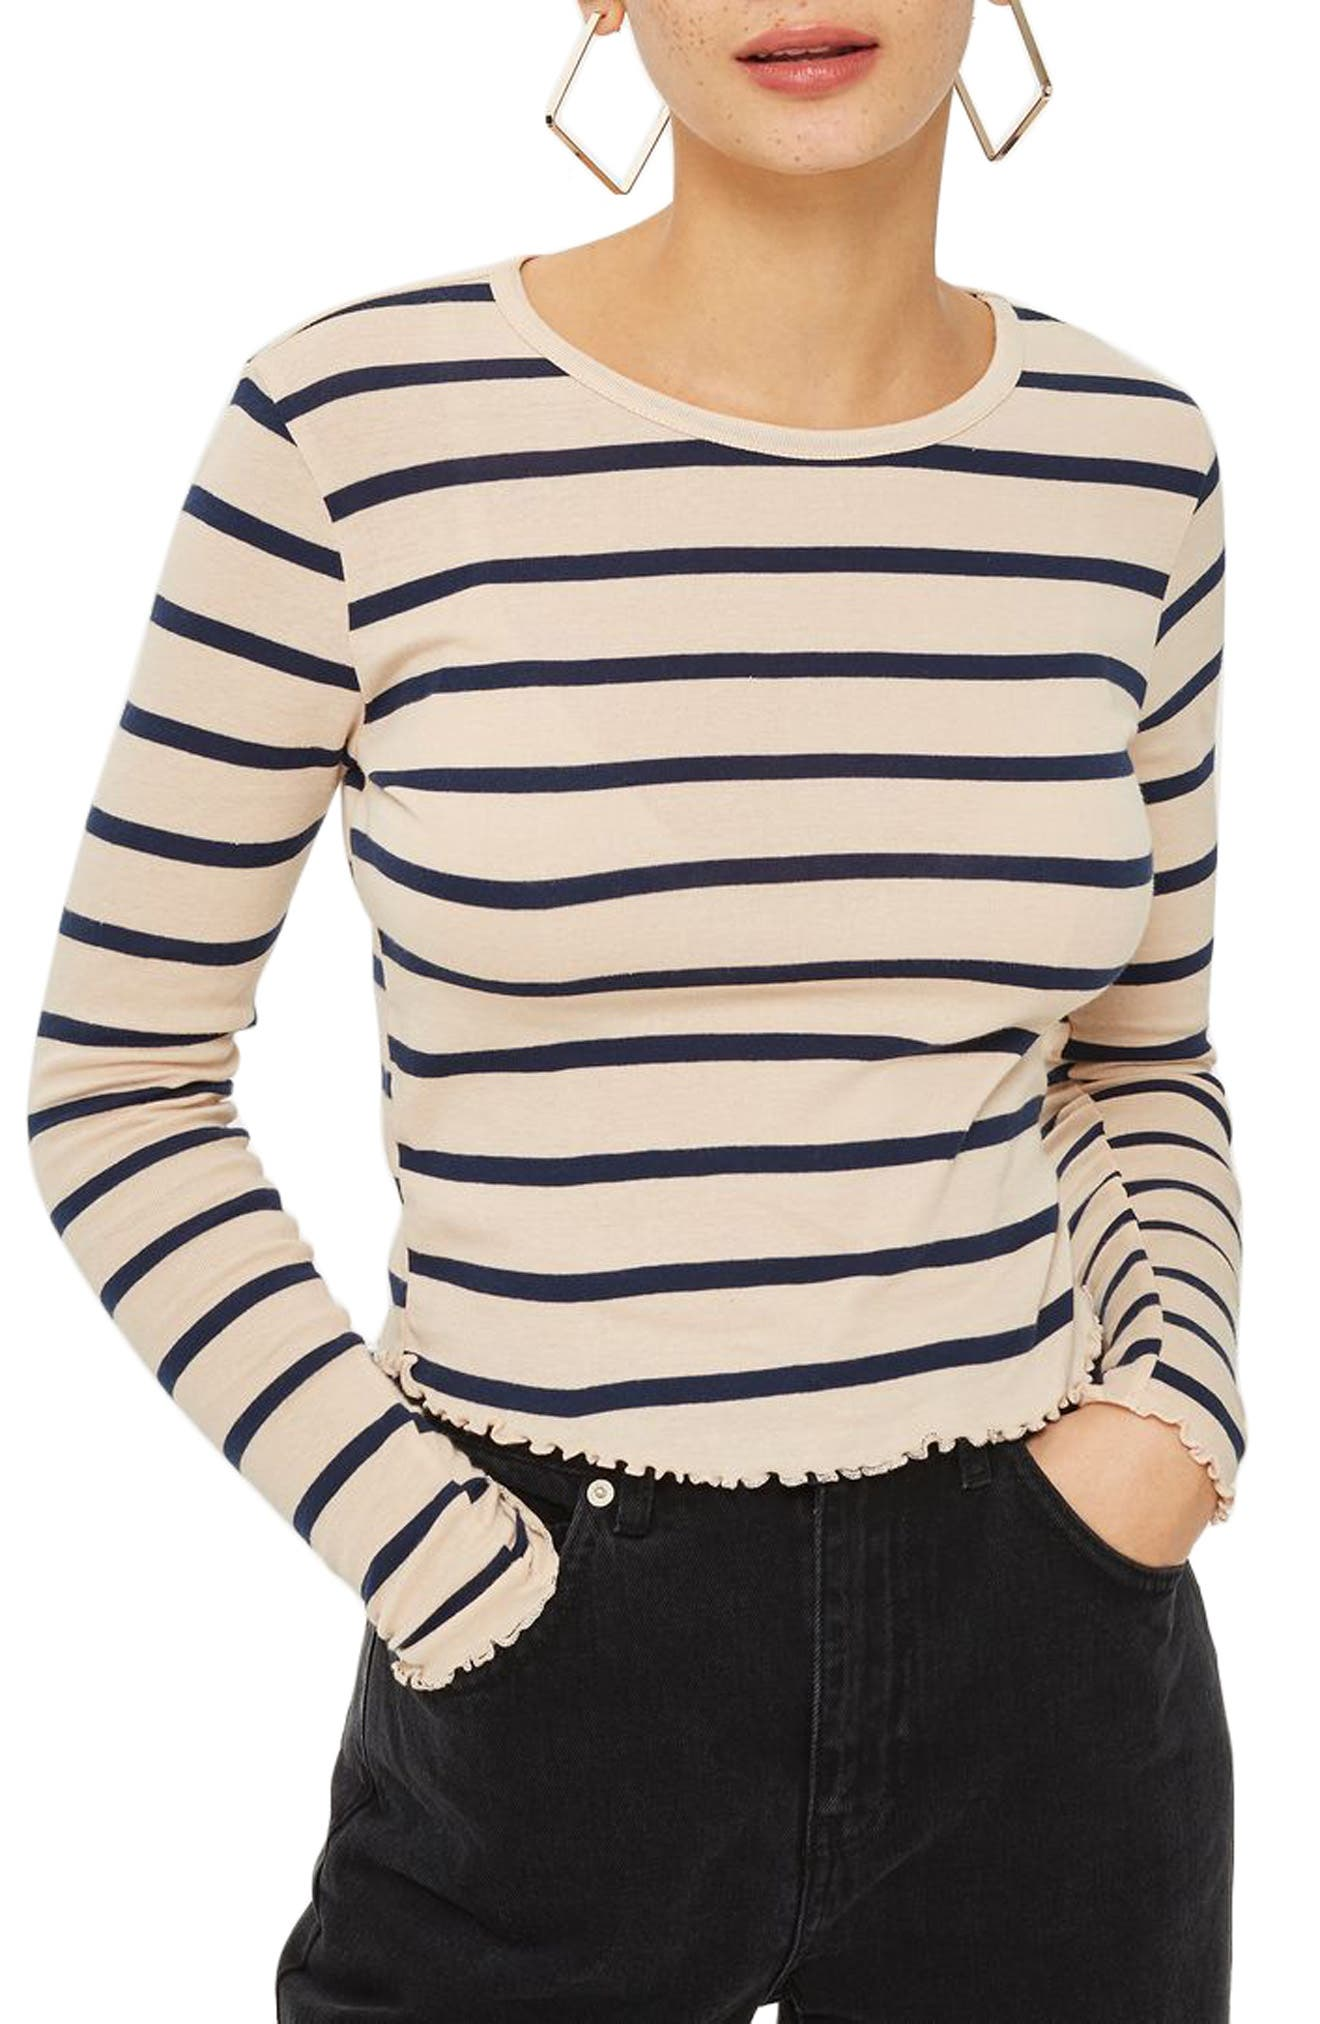 Petite Stripe Lettuce Trim T-Shirt,                         Main,                         color, 251